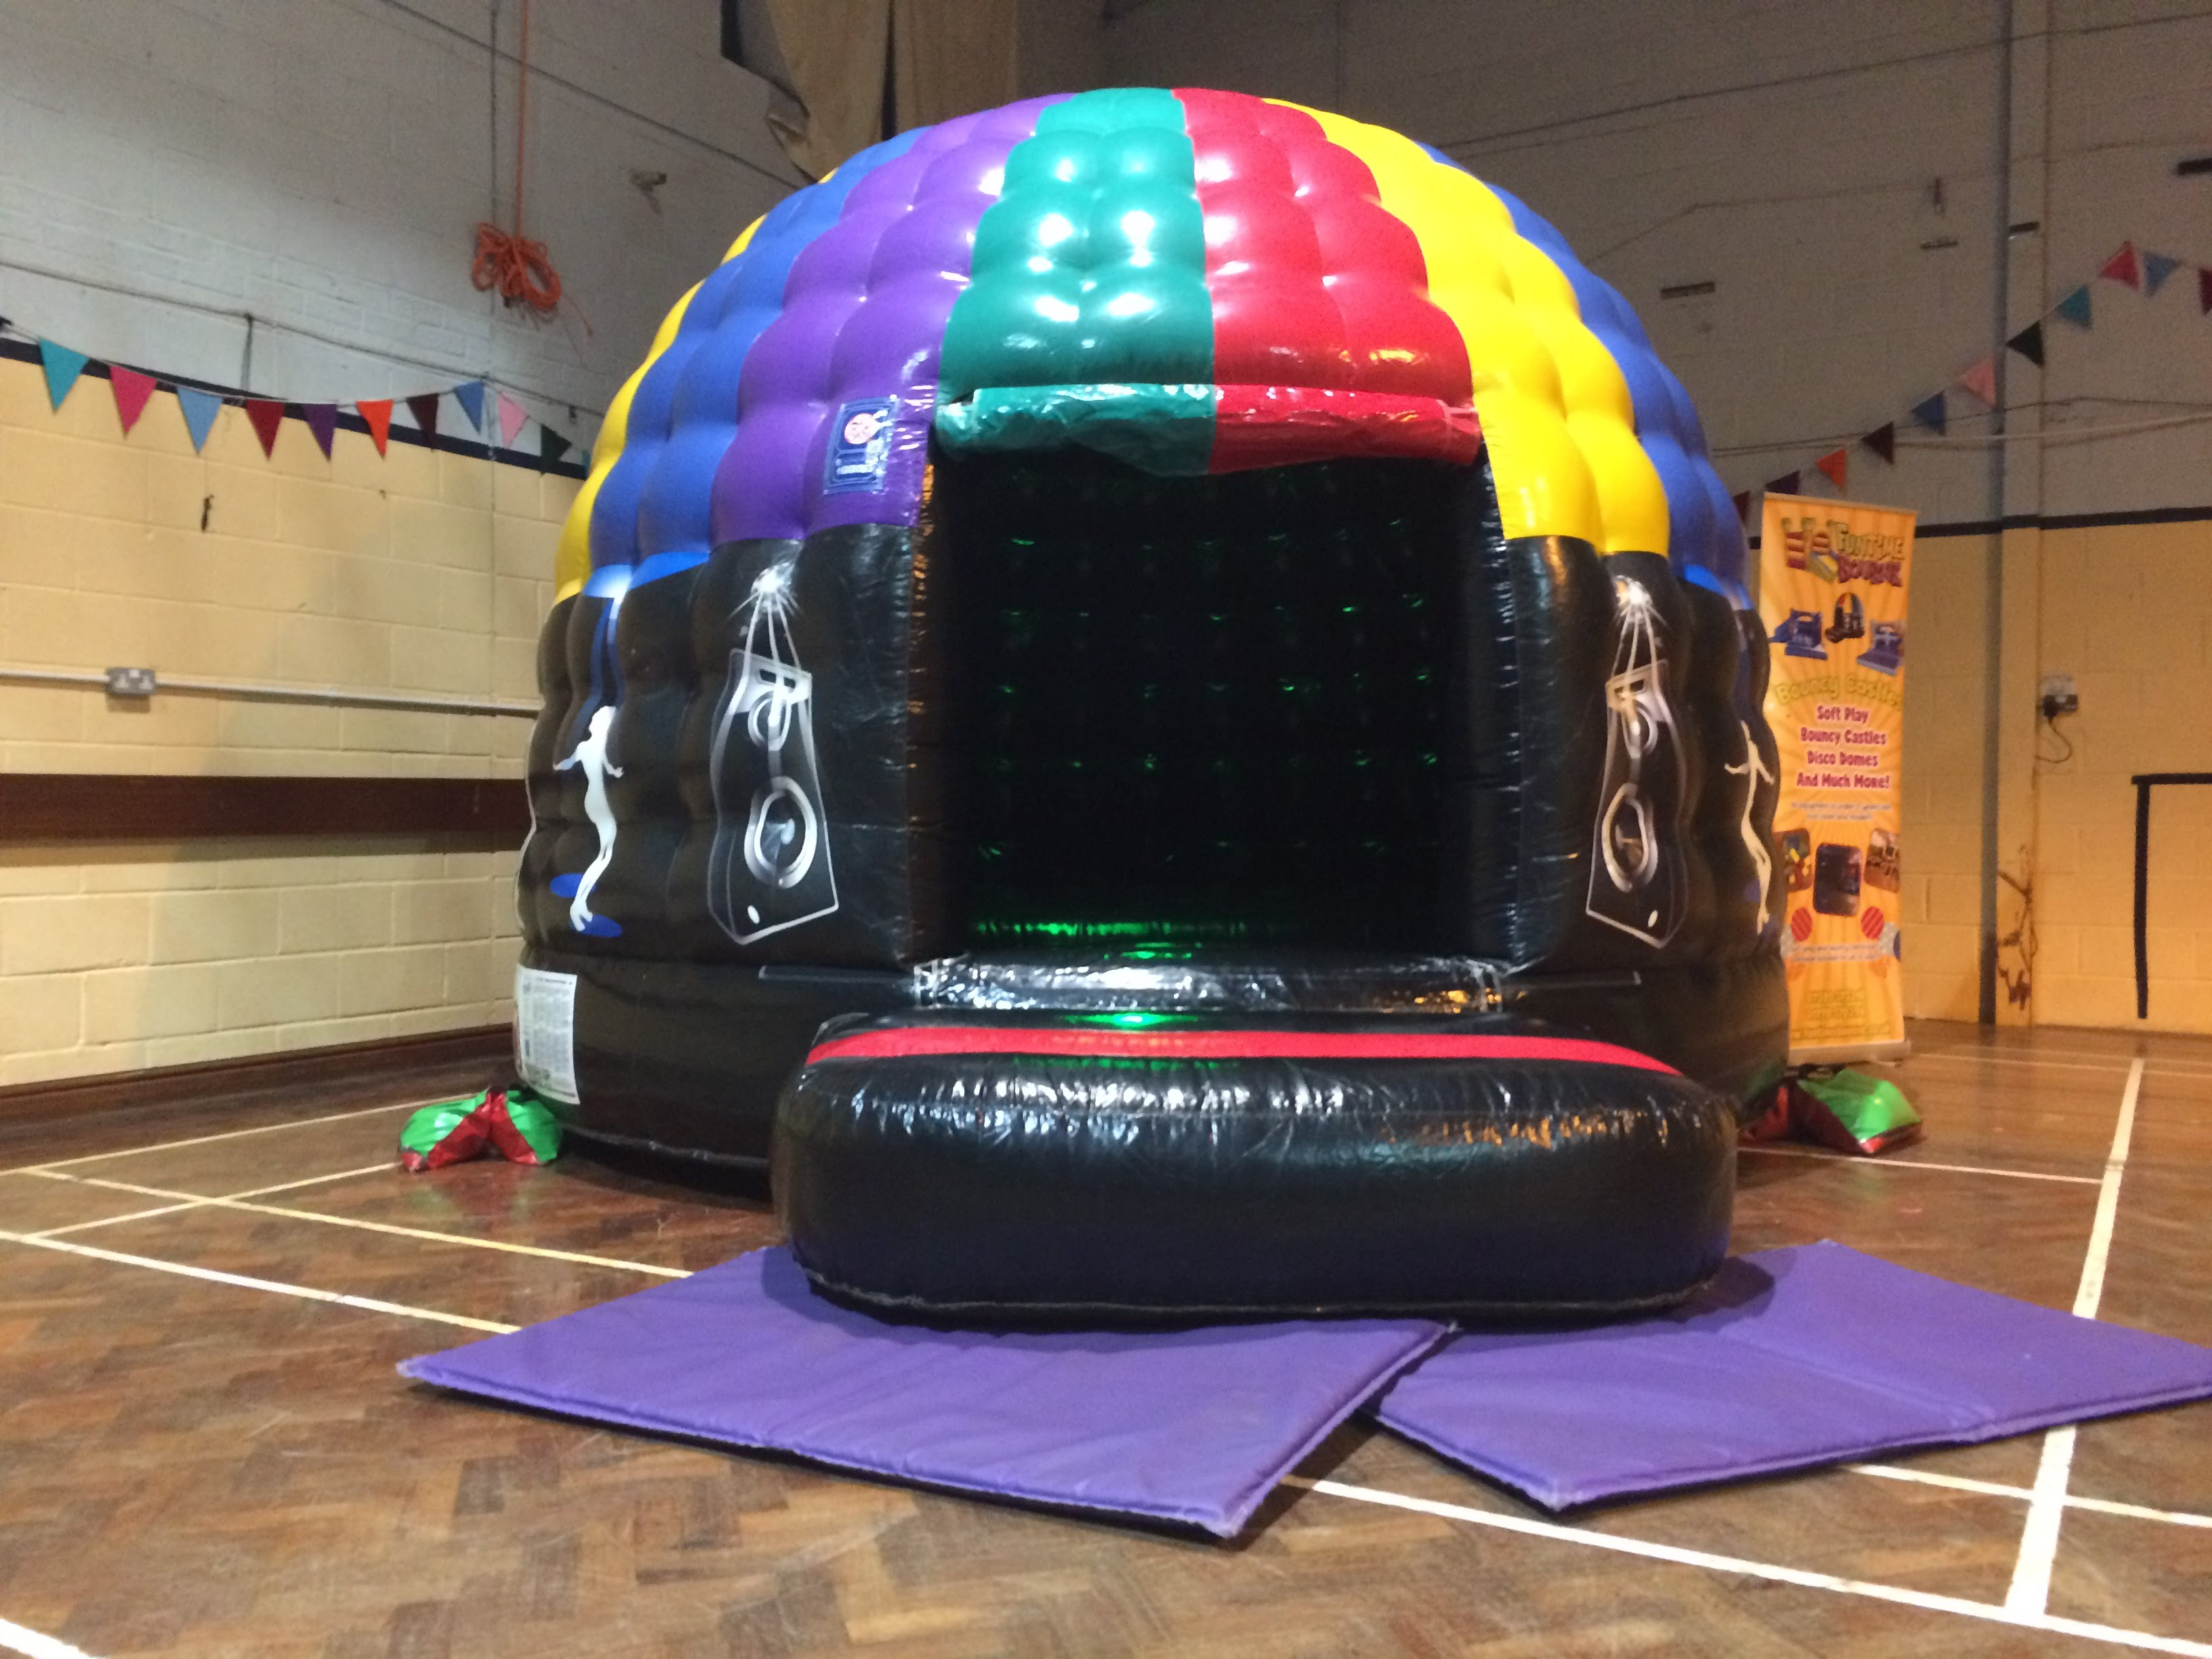 New disco dome party pod for hire in Spalding, Bourne and surrounding areas